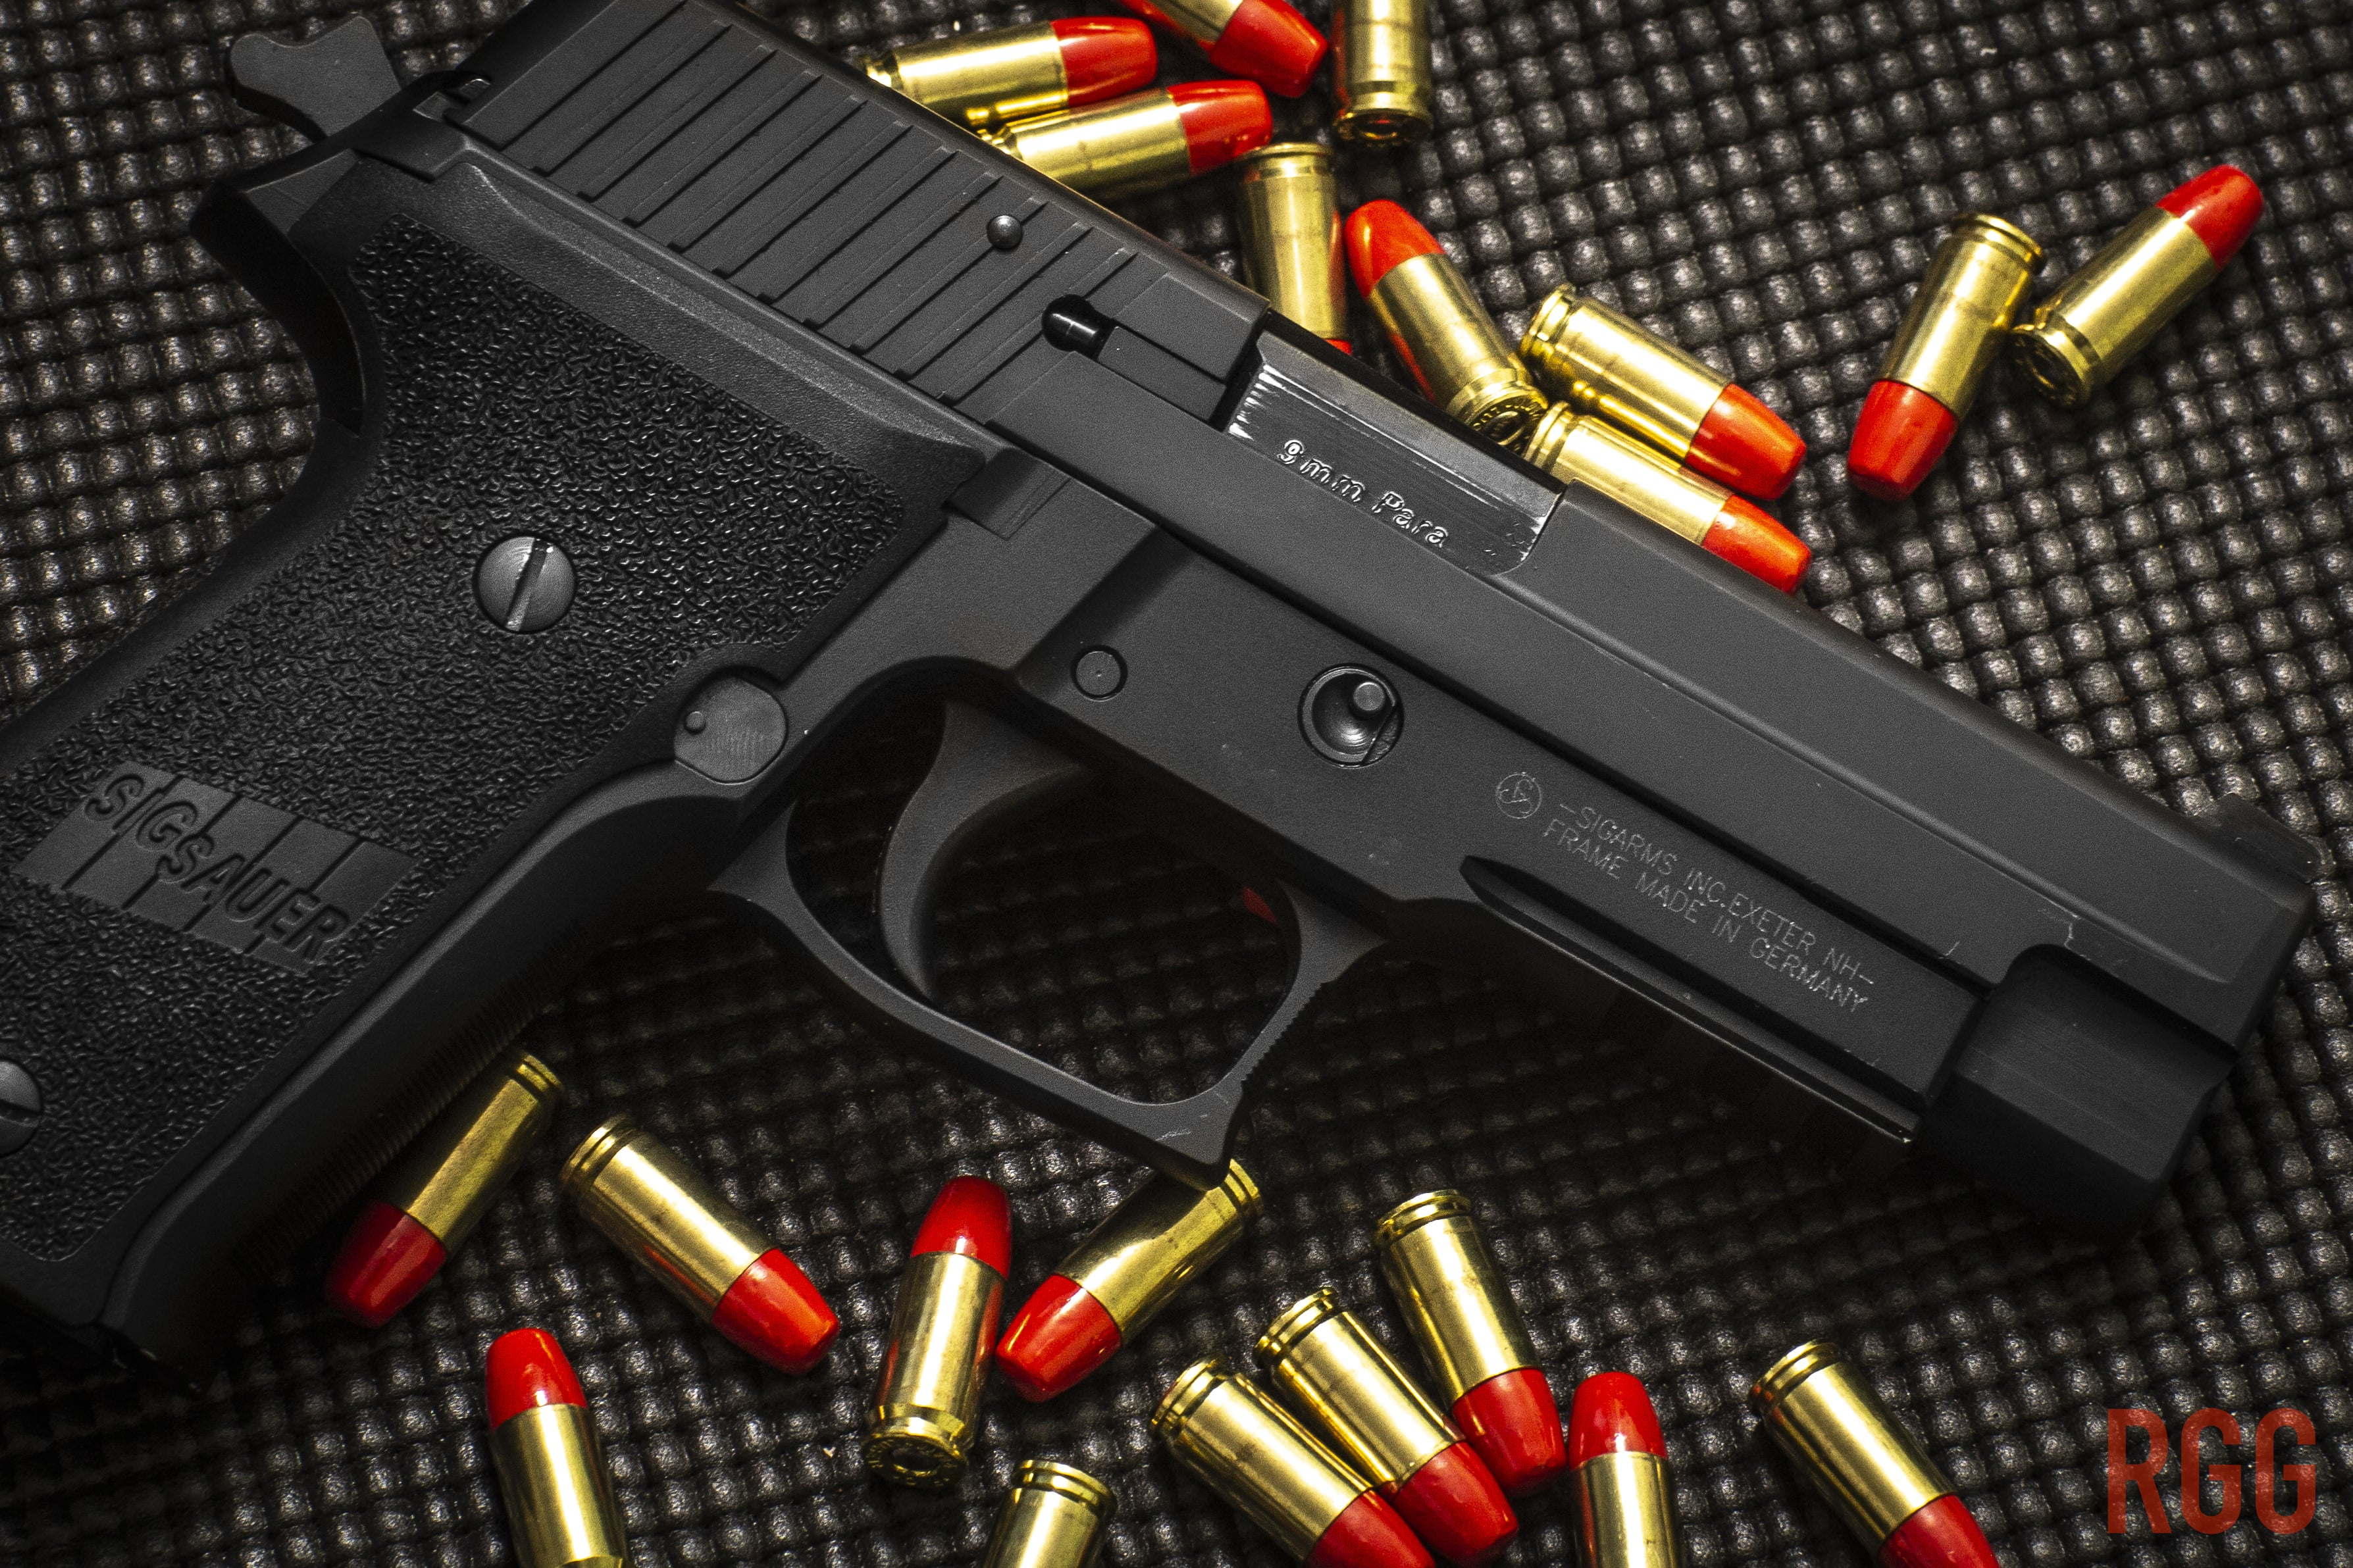 Though with cosmetic wear, this P226 functions to a superb level.